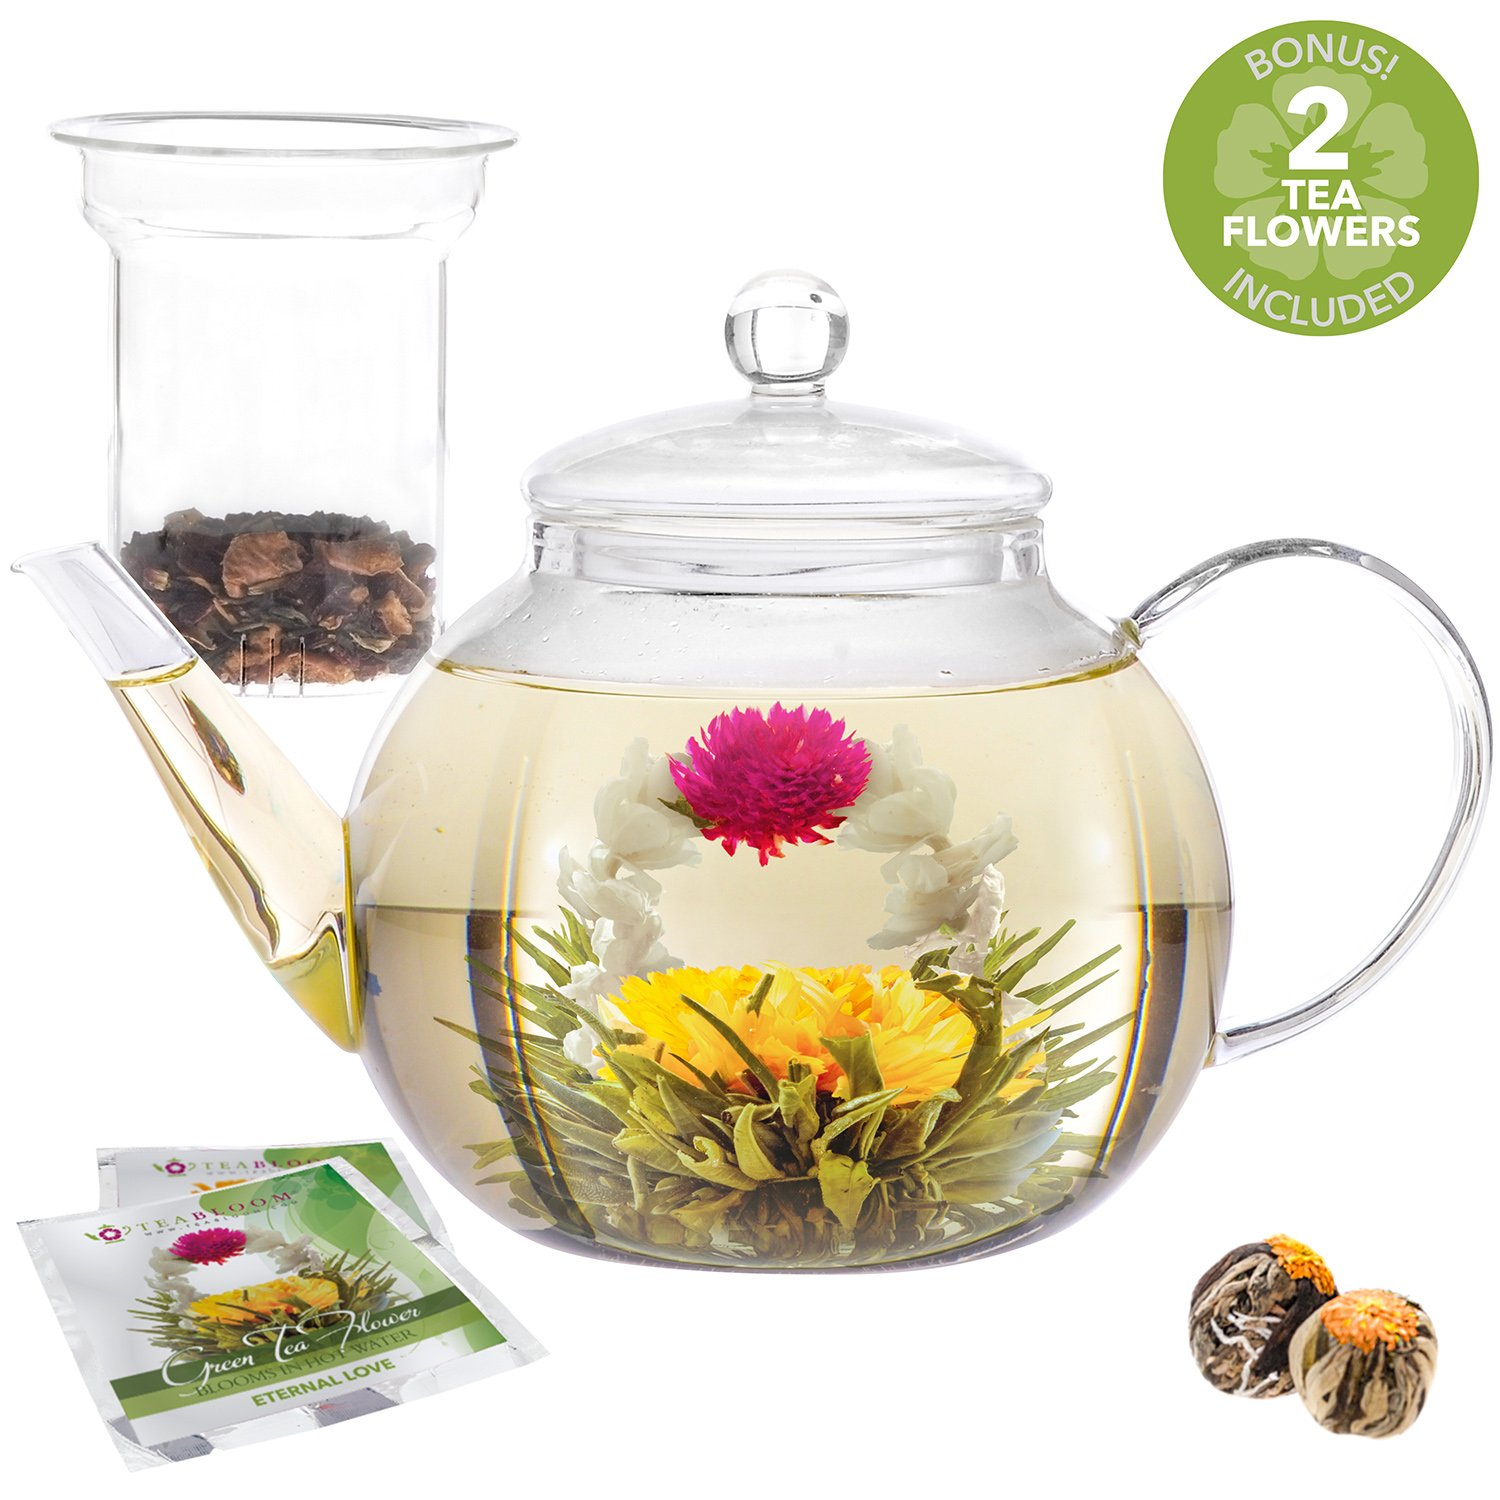 Teabloom Teapot Gift Set